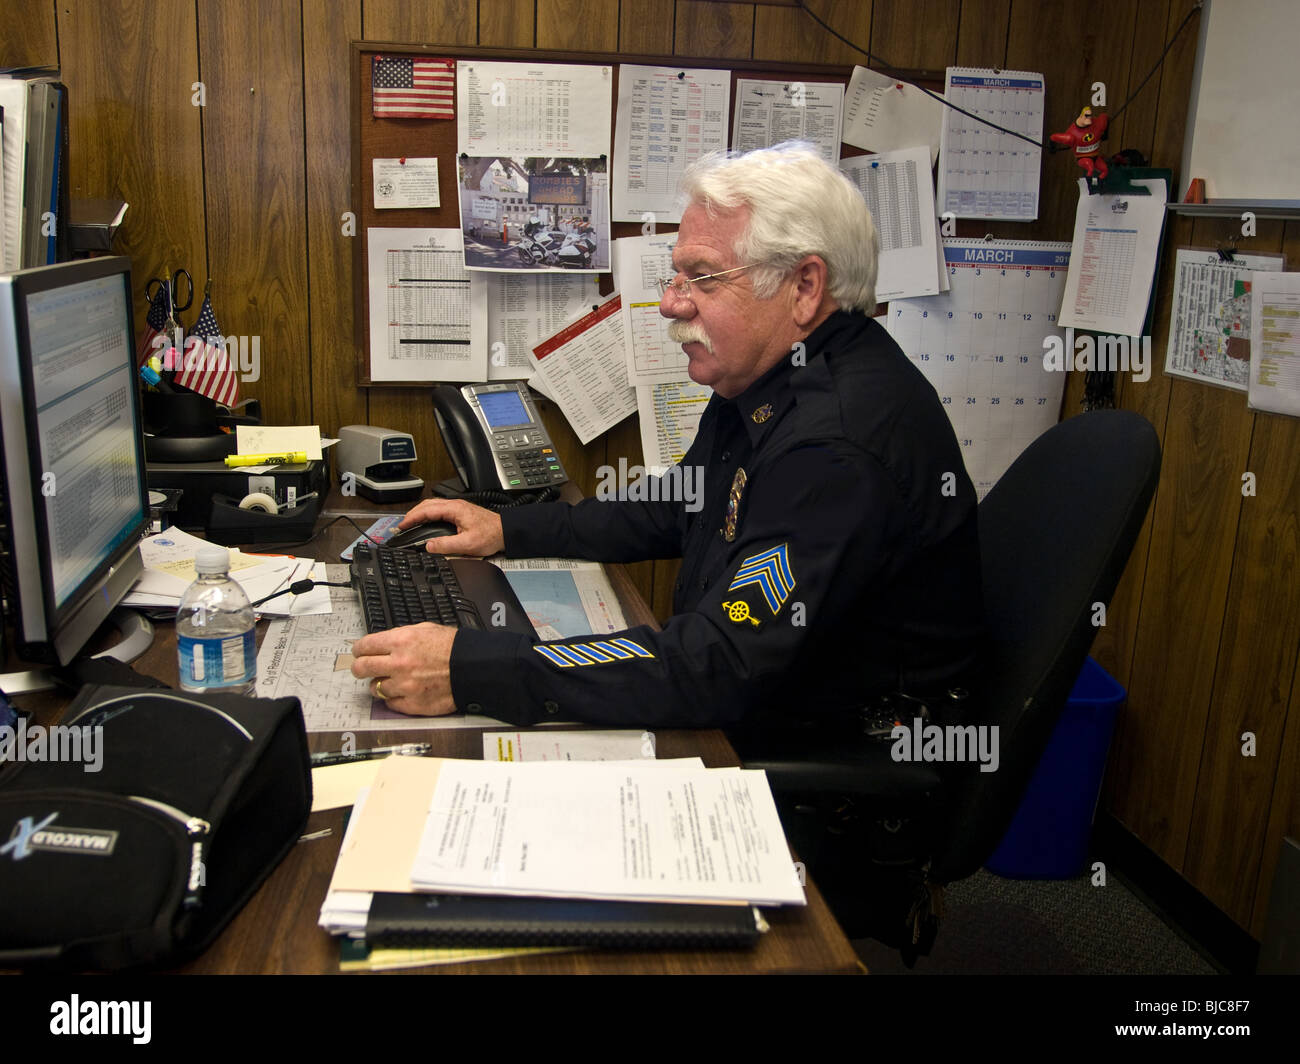 Senior police Sargent at work at his desk Stock Photo